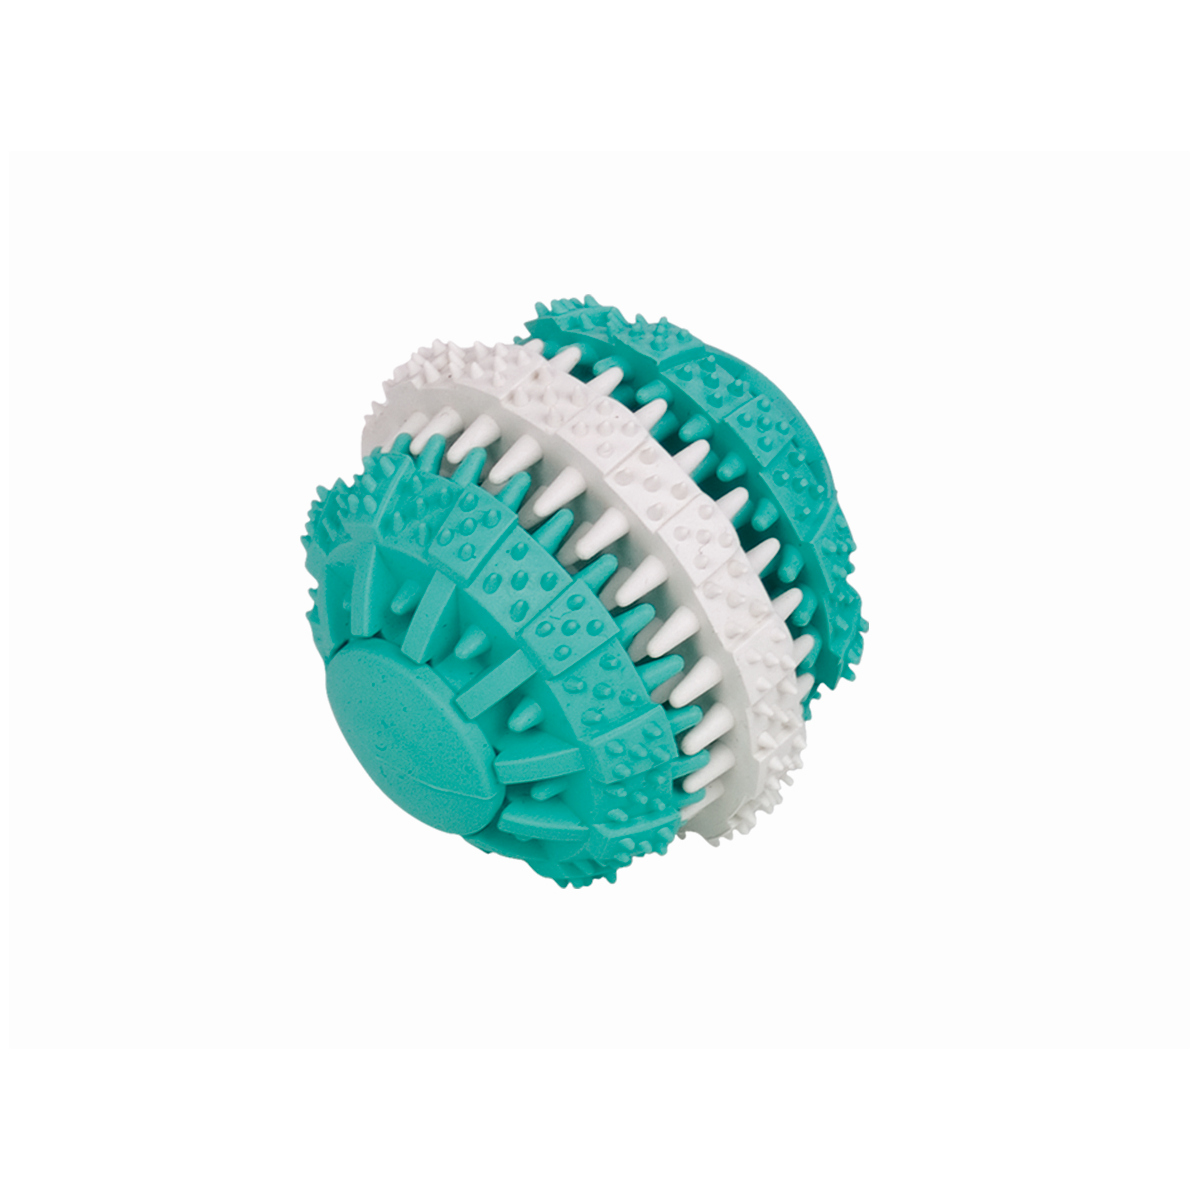 NB DENTAL FUN BALL 6CM J 00003